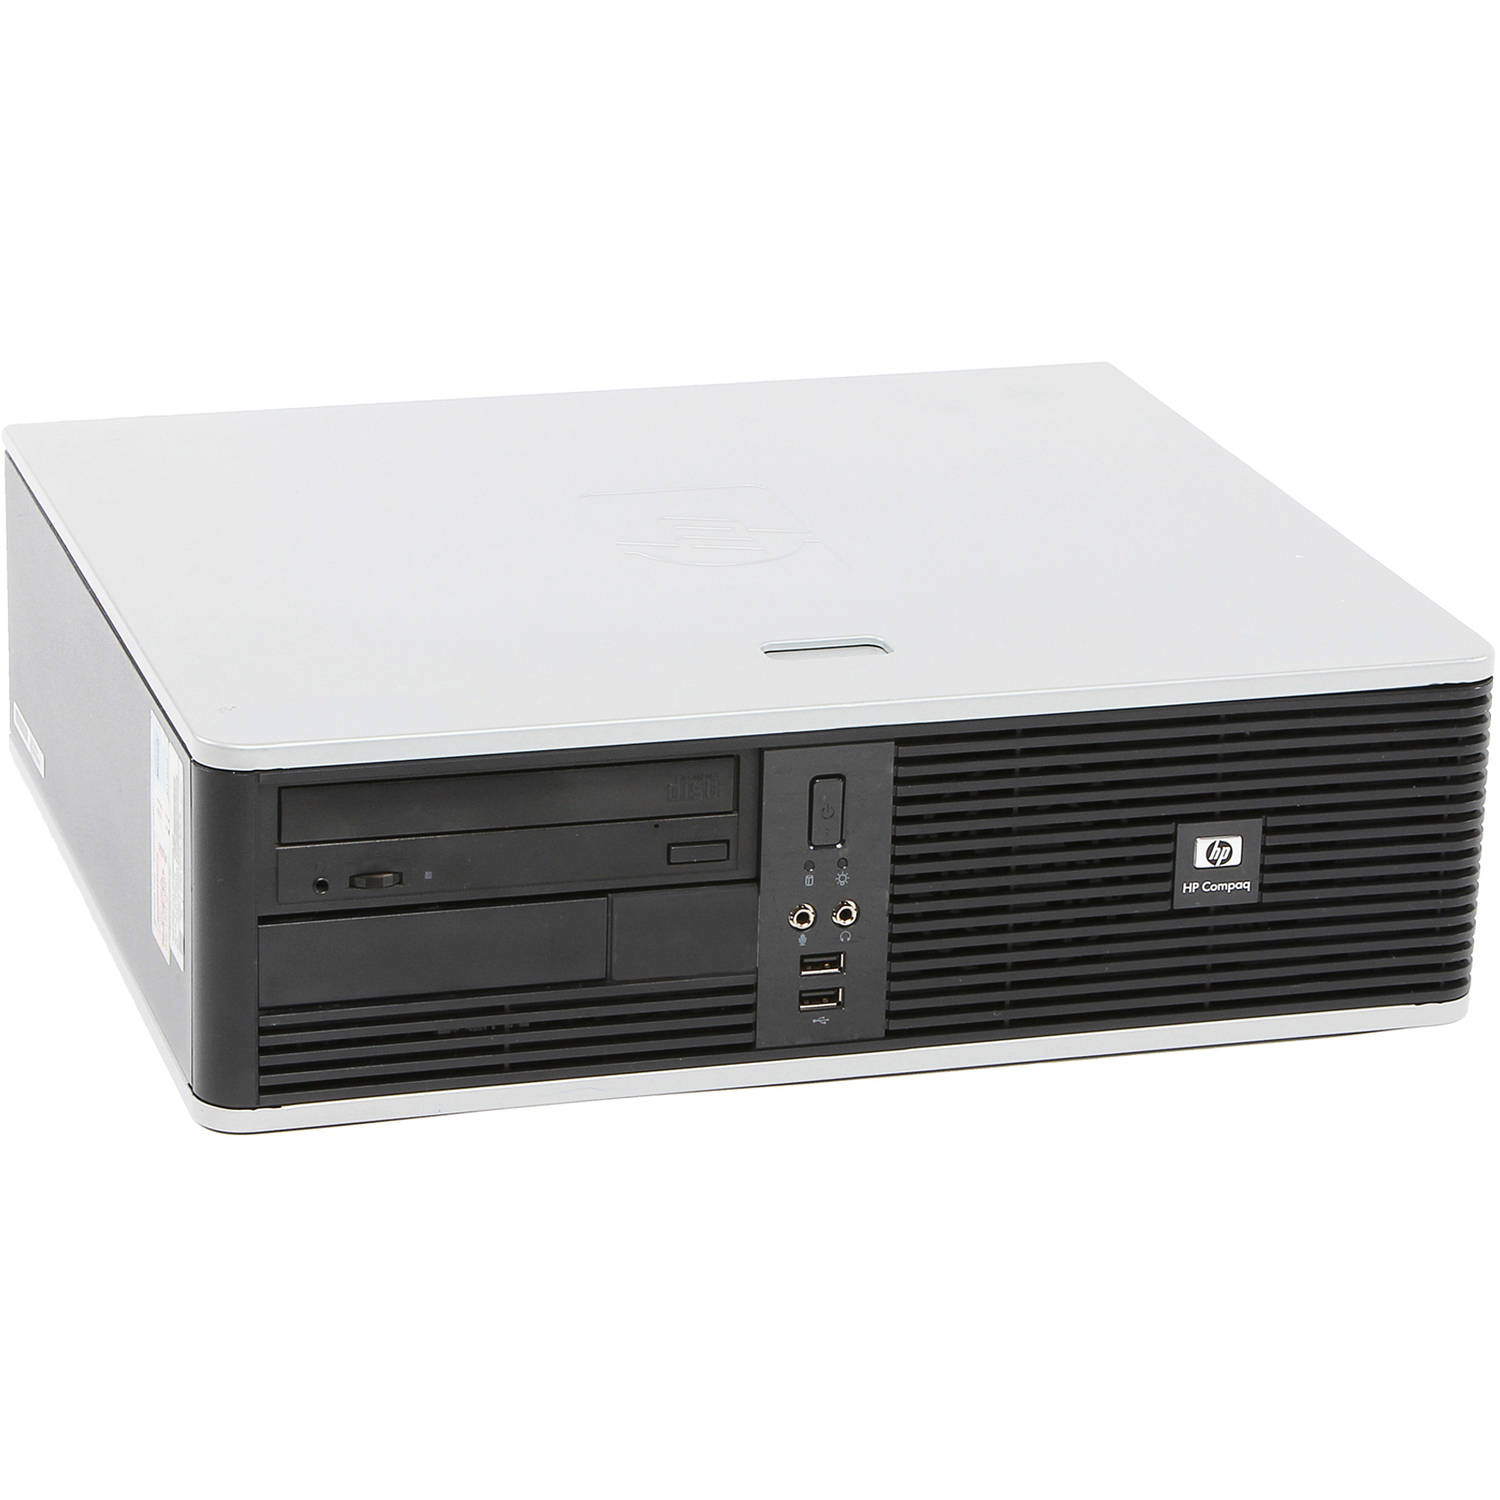 Refurbished HP DC5800 Small Form Factor Desktop PC with Intel Core 2 Duo Processor, 2GB Memory, 320GB Hard Drive and Windows 7 Home Premium (Monitor Not Included)